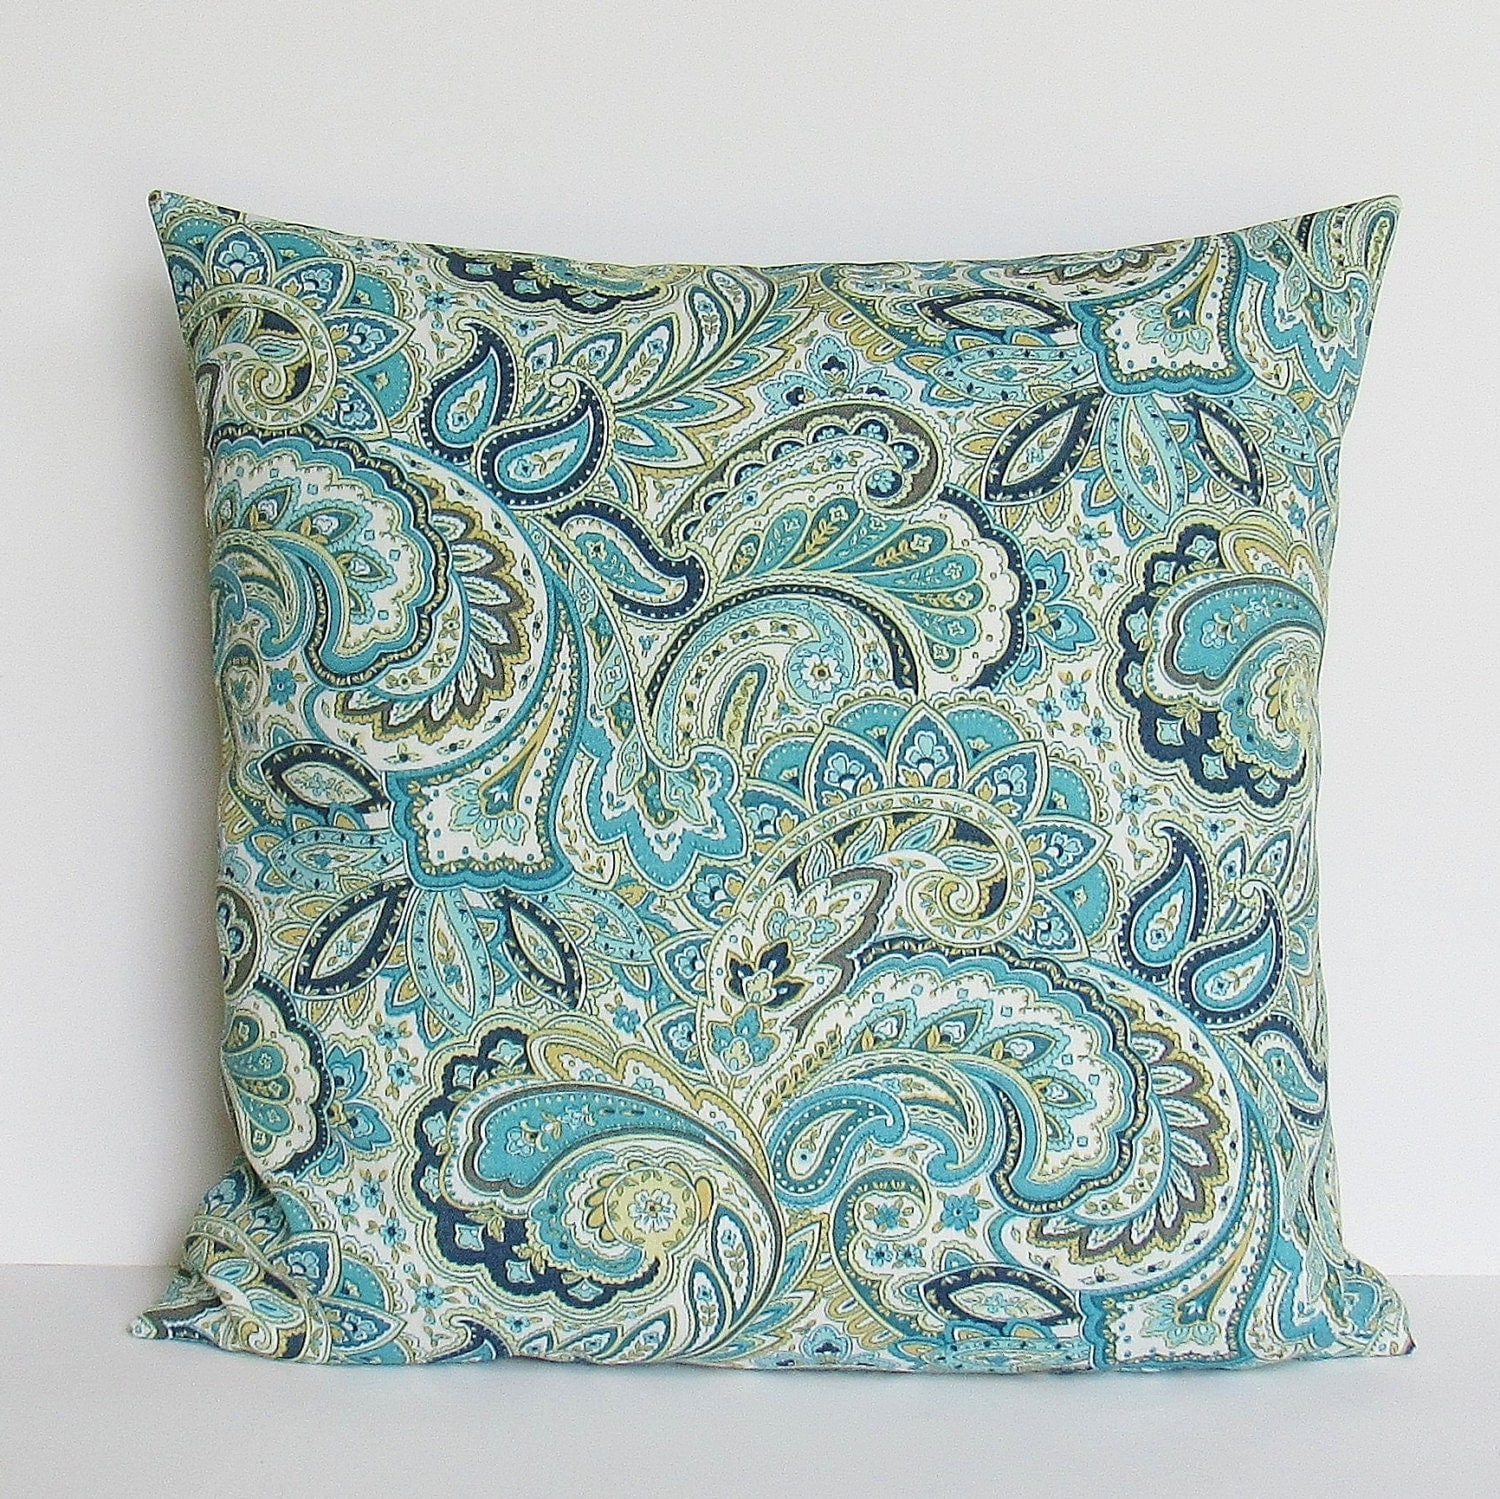 Navy Teal Paisley Outdoor Pillow Cover Decorative Throw Accent